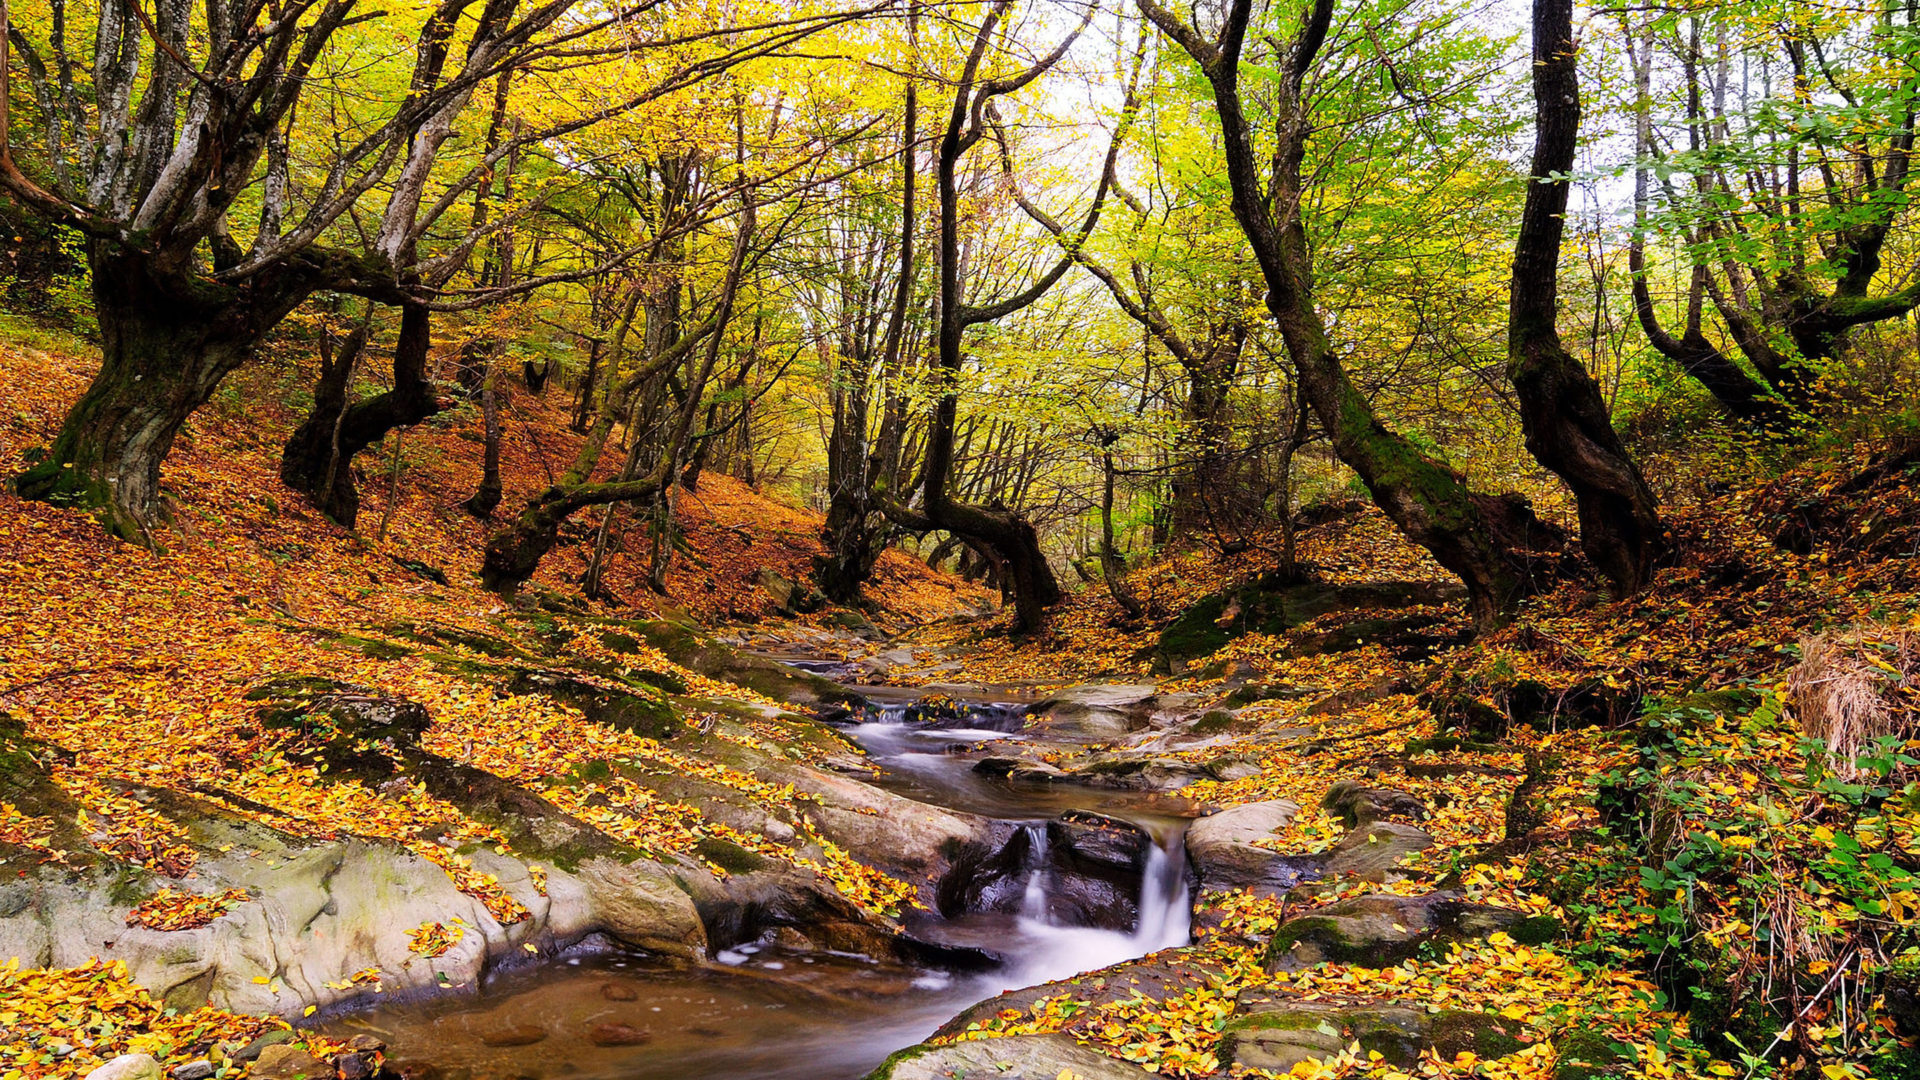 Fall Wallpaper For Computer Screen Wonderful Autumn Landscape Forest Trees Stream Fallen